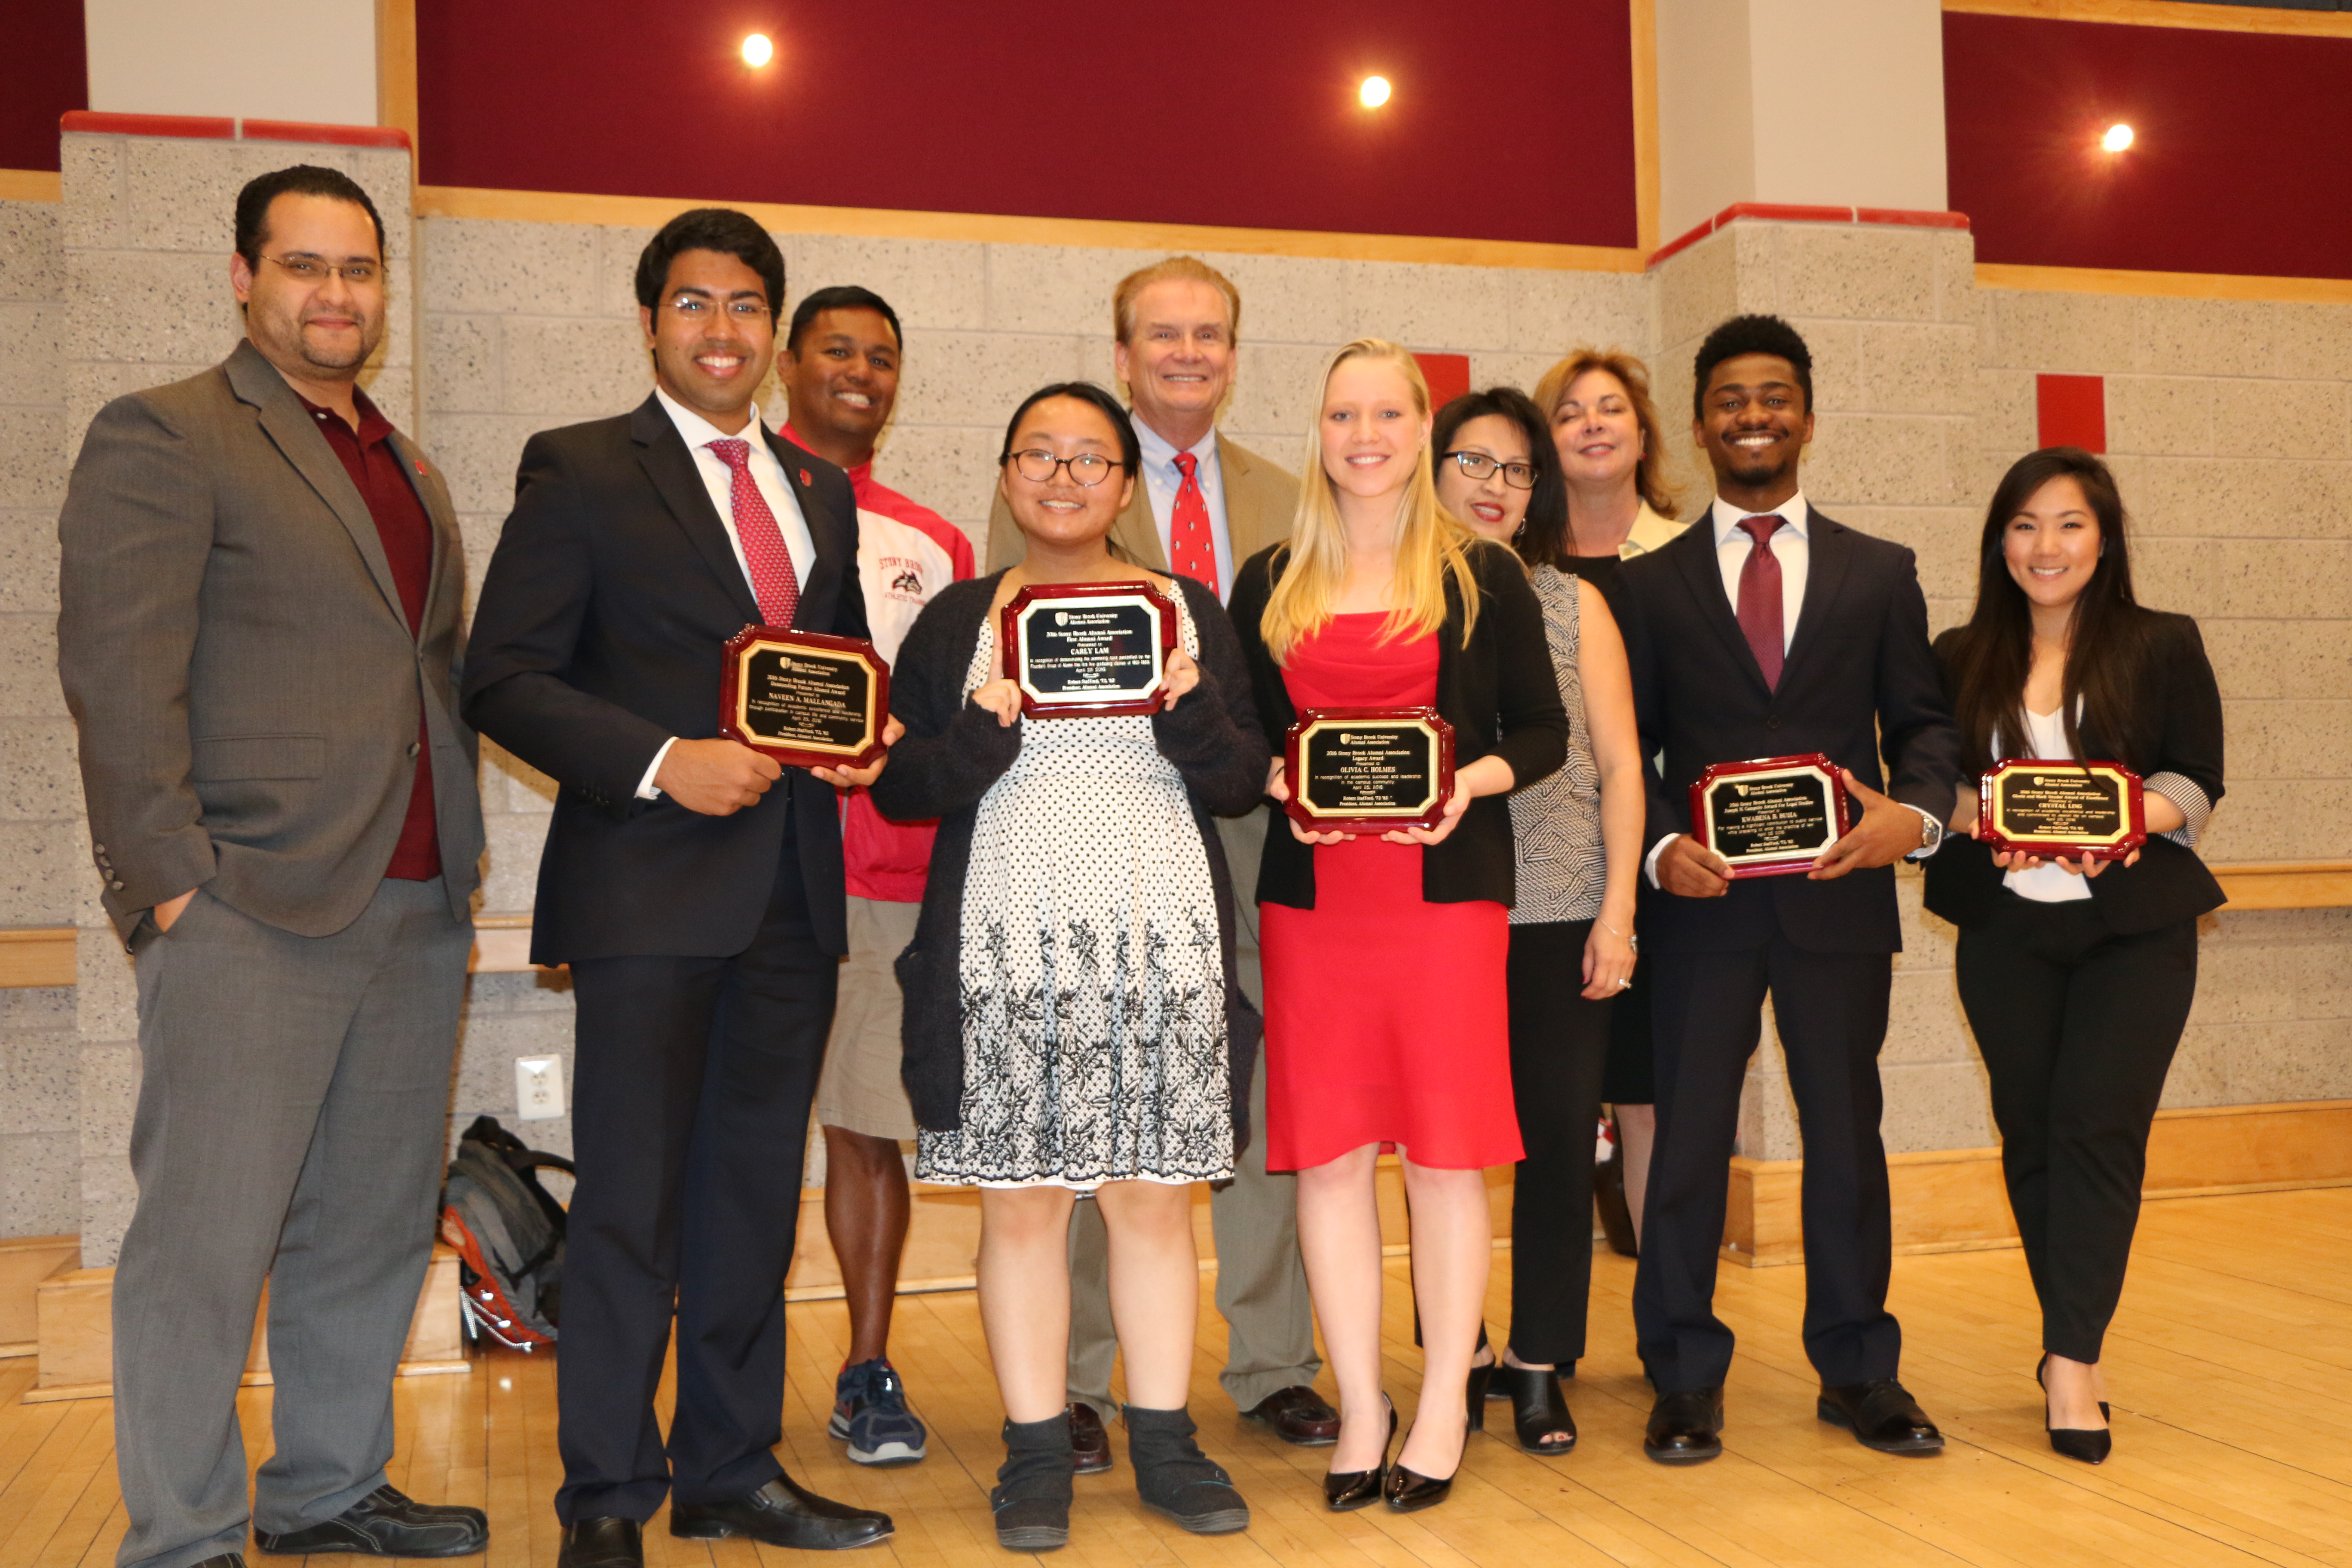 2016 Alumni Association Student Scholarship Recipients